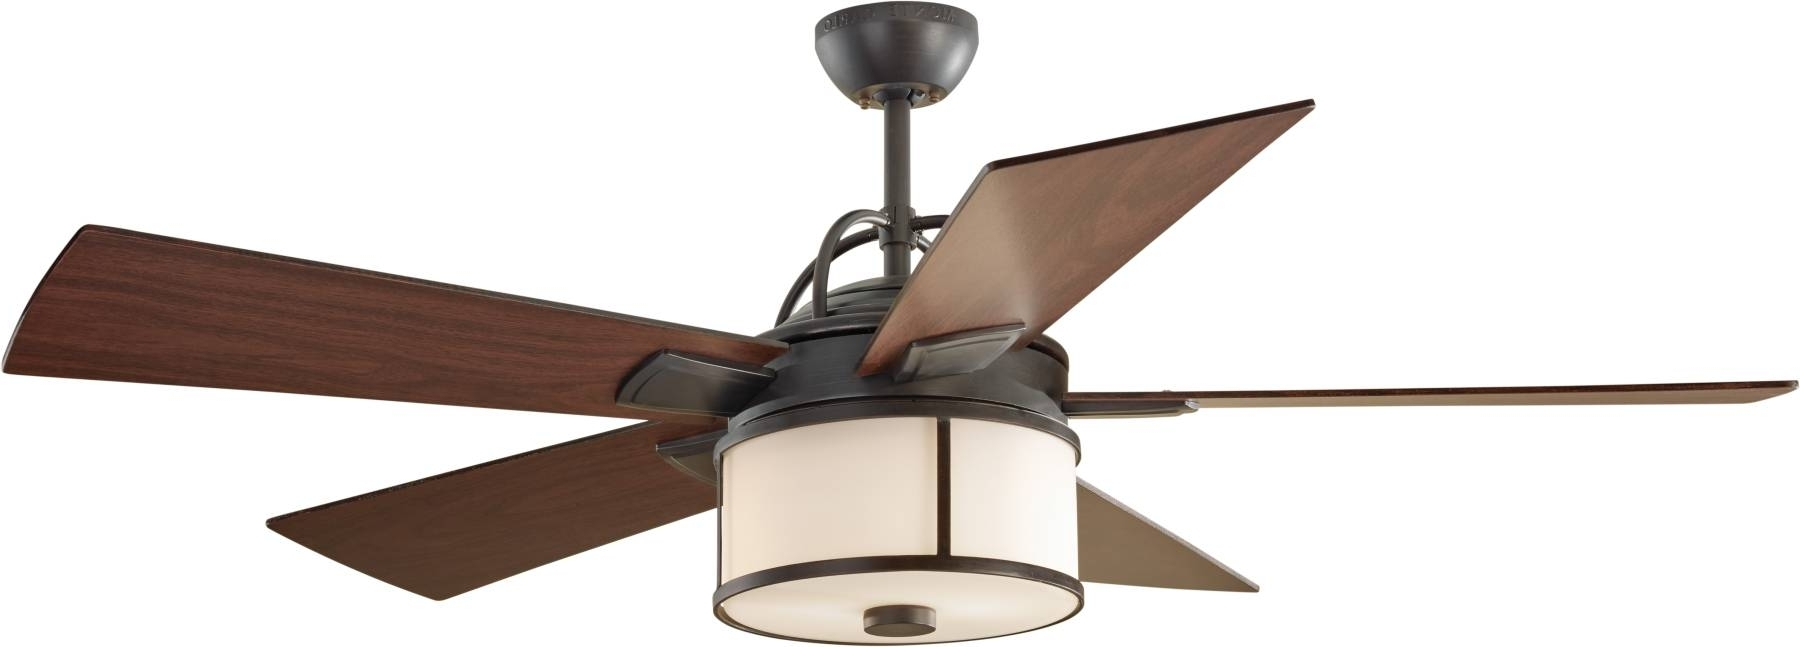 Victorian Style Outdoor Ceiling Fans Regarding Popular Monte Carlo Ceiling Fan Light Kit Beautiful Ceiling Light Fixture (View 17 of 20)